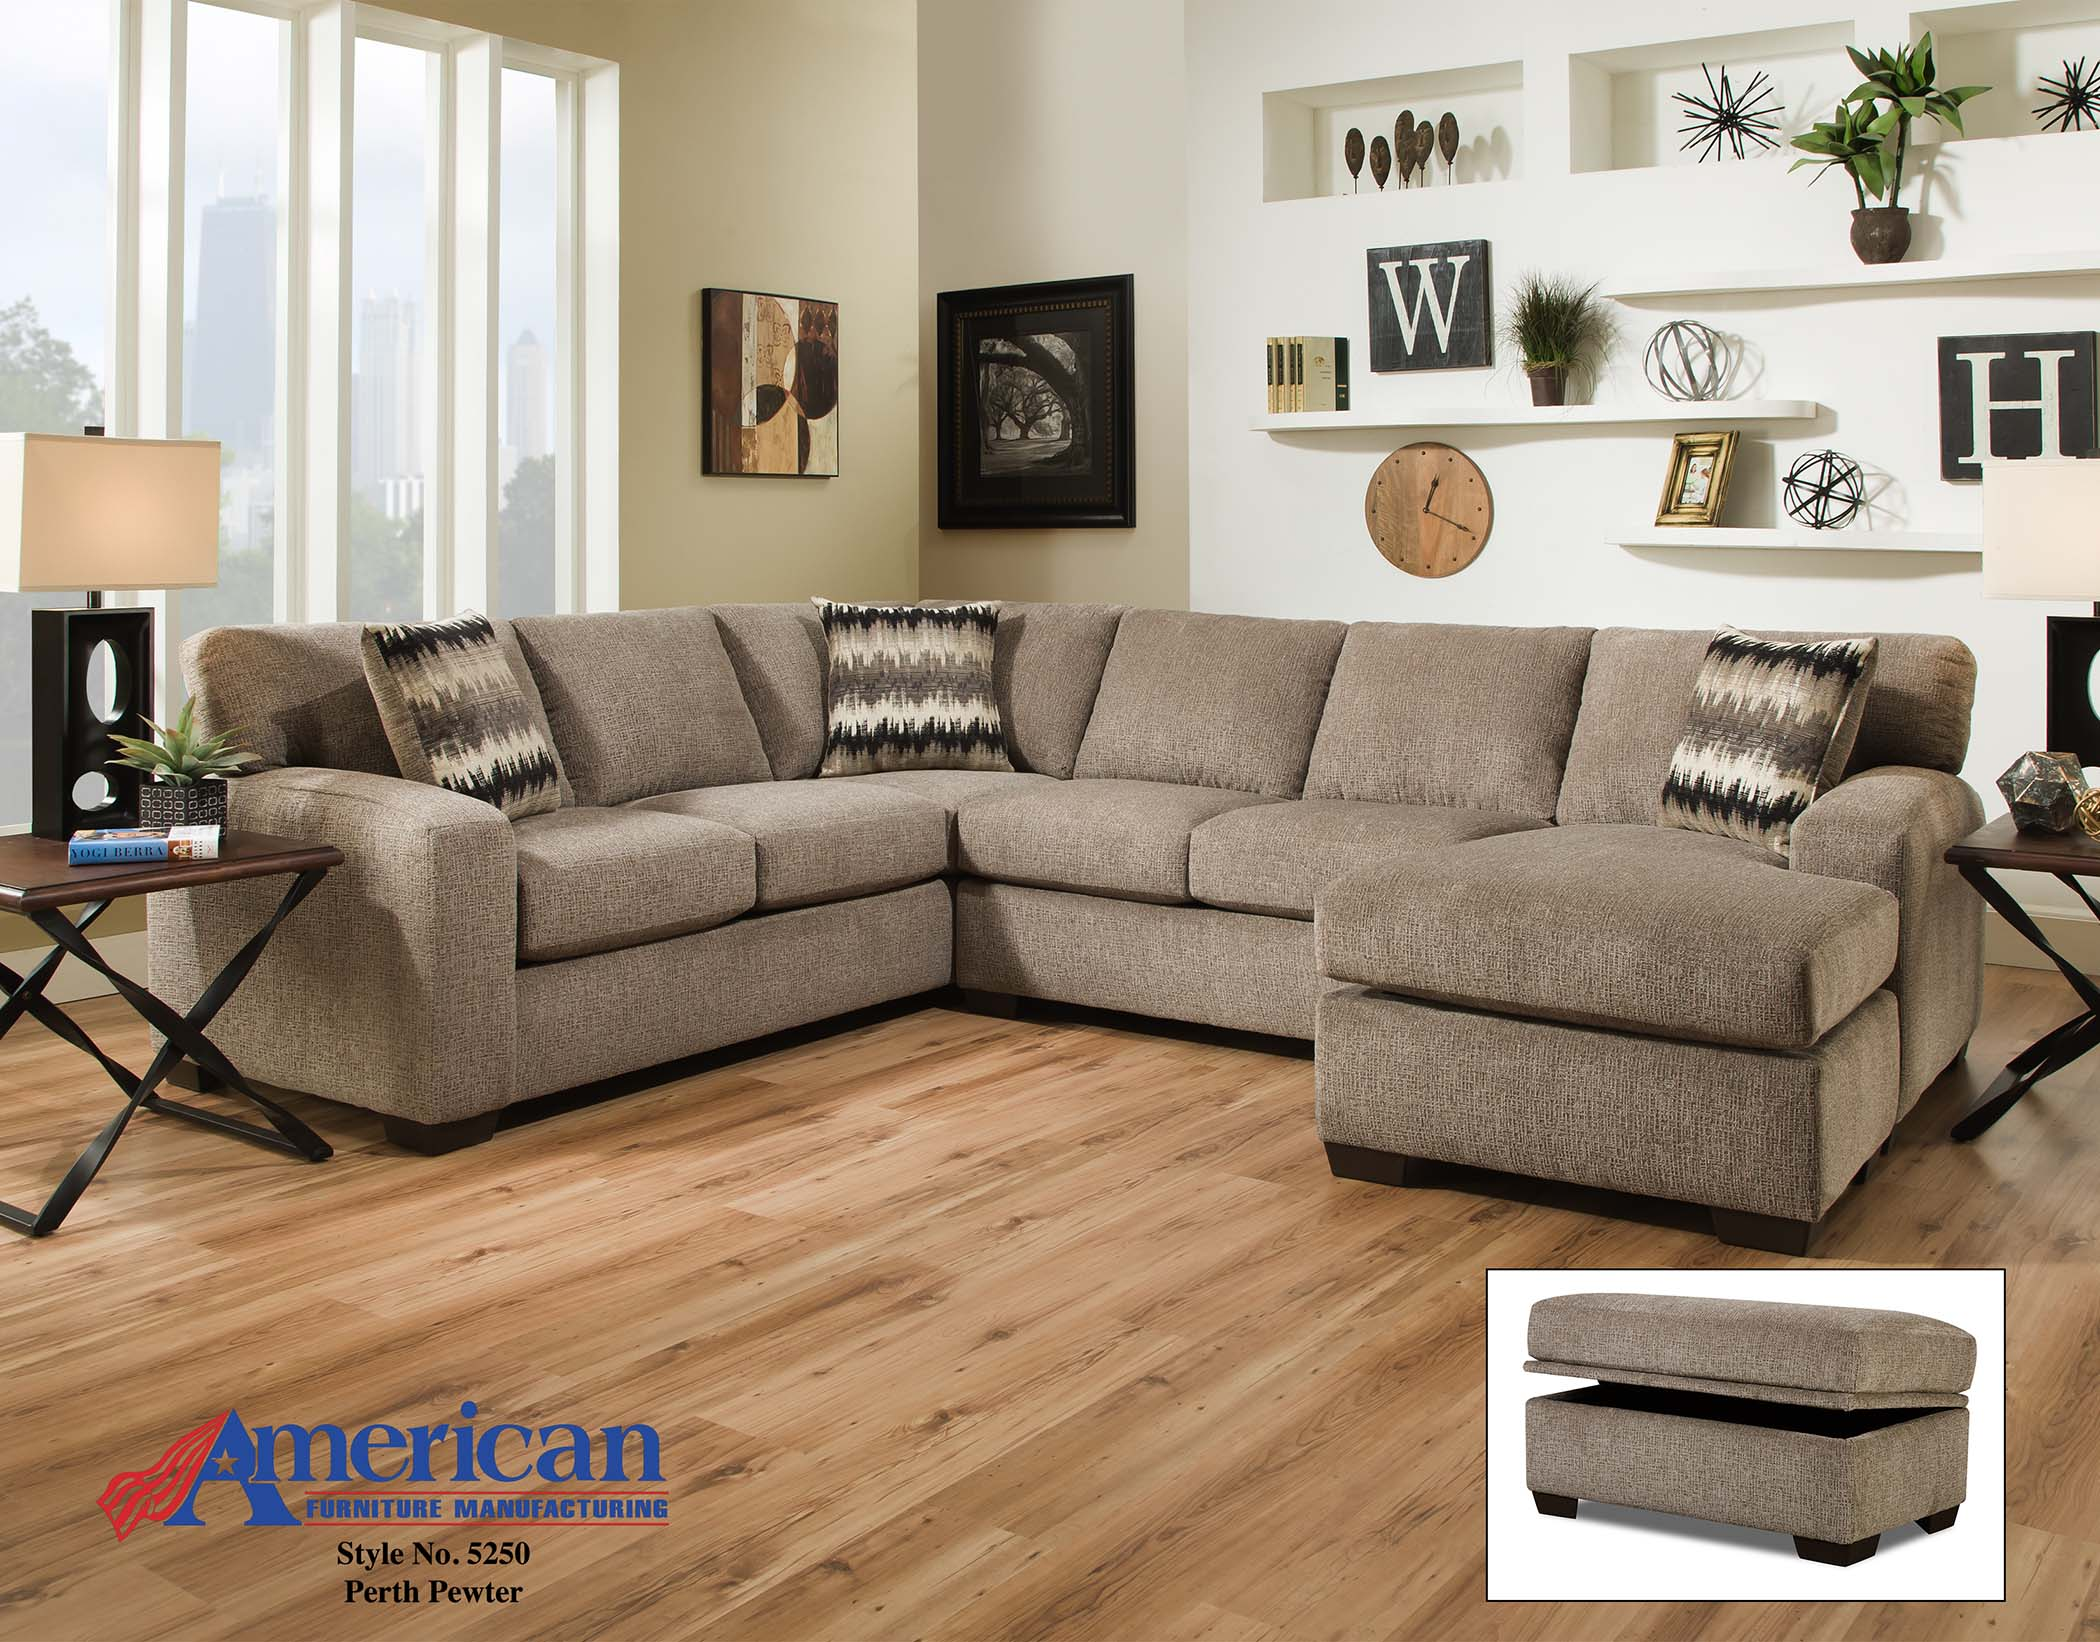 5250 Perth Pewter Sectional American Furniture